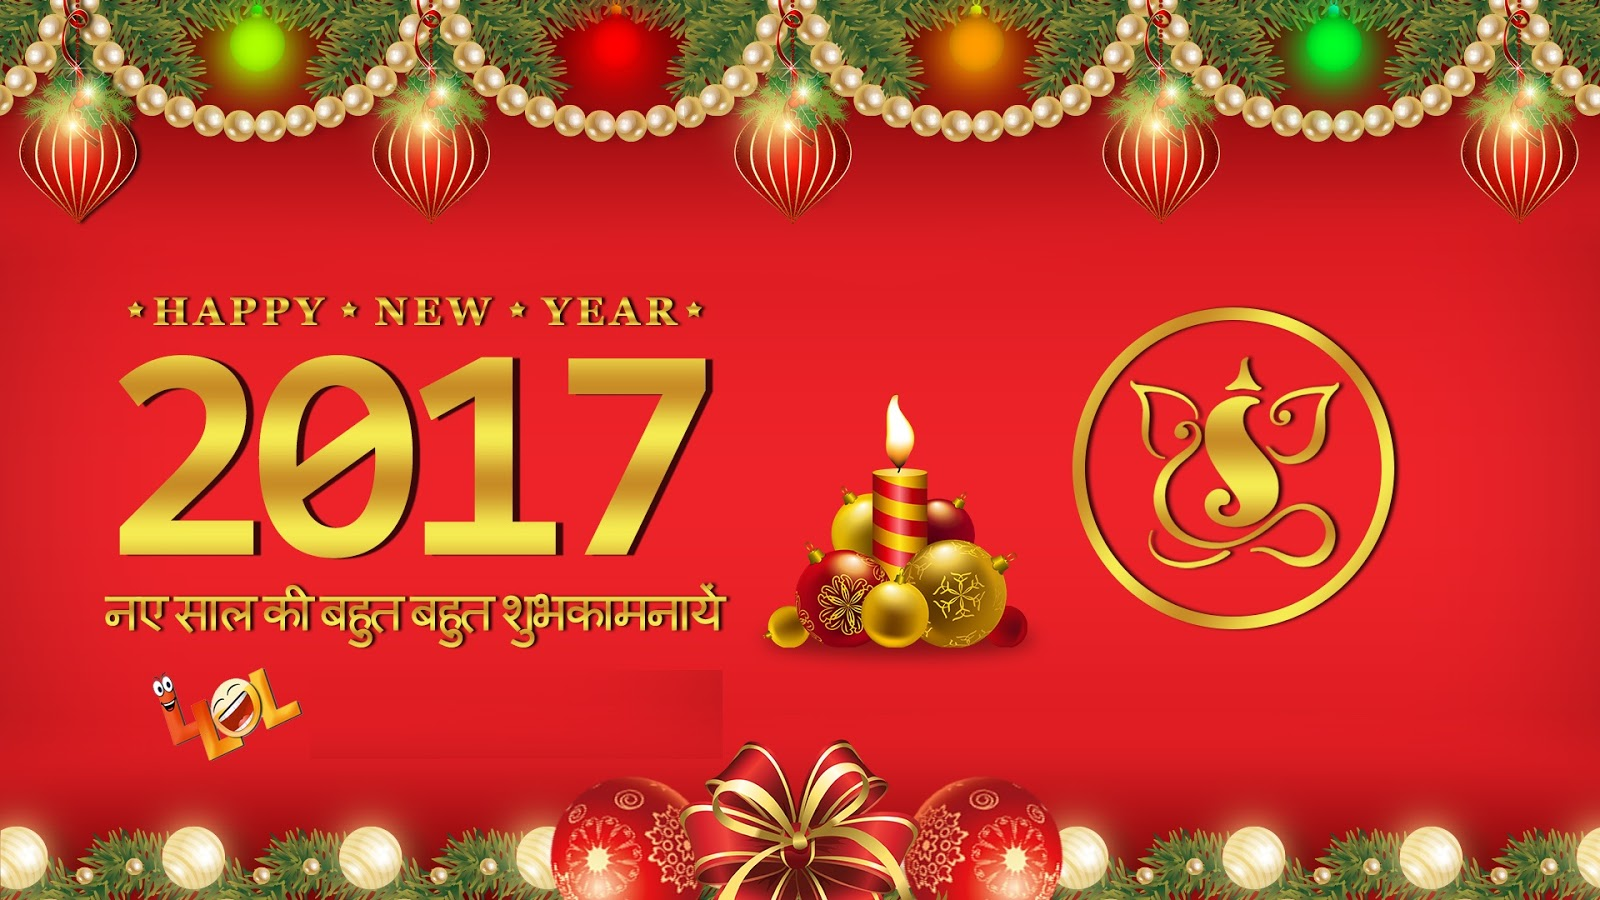 Happy New Year 2017 Images for WhatsApp Group, Facebook Post, Twitter Page